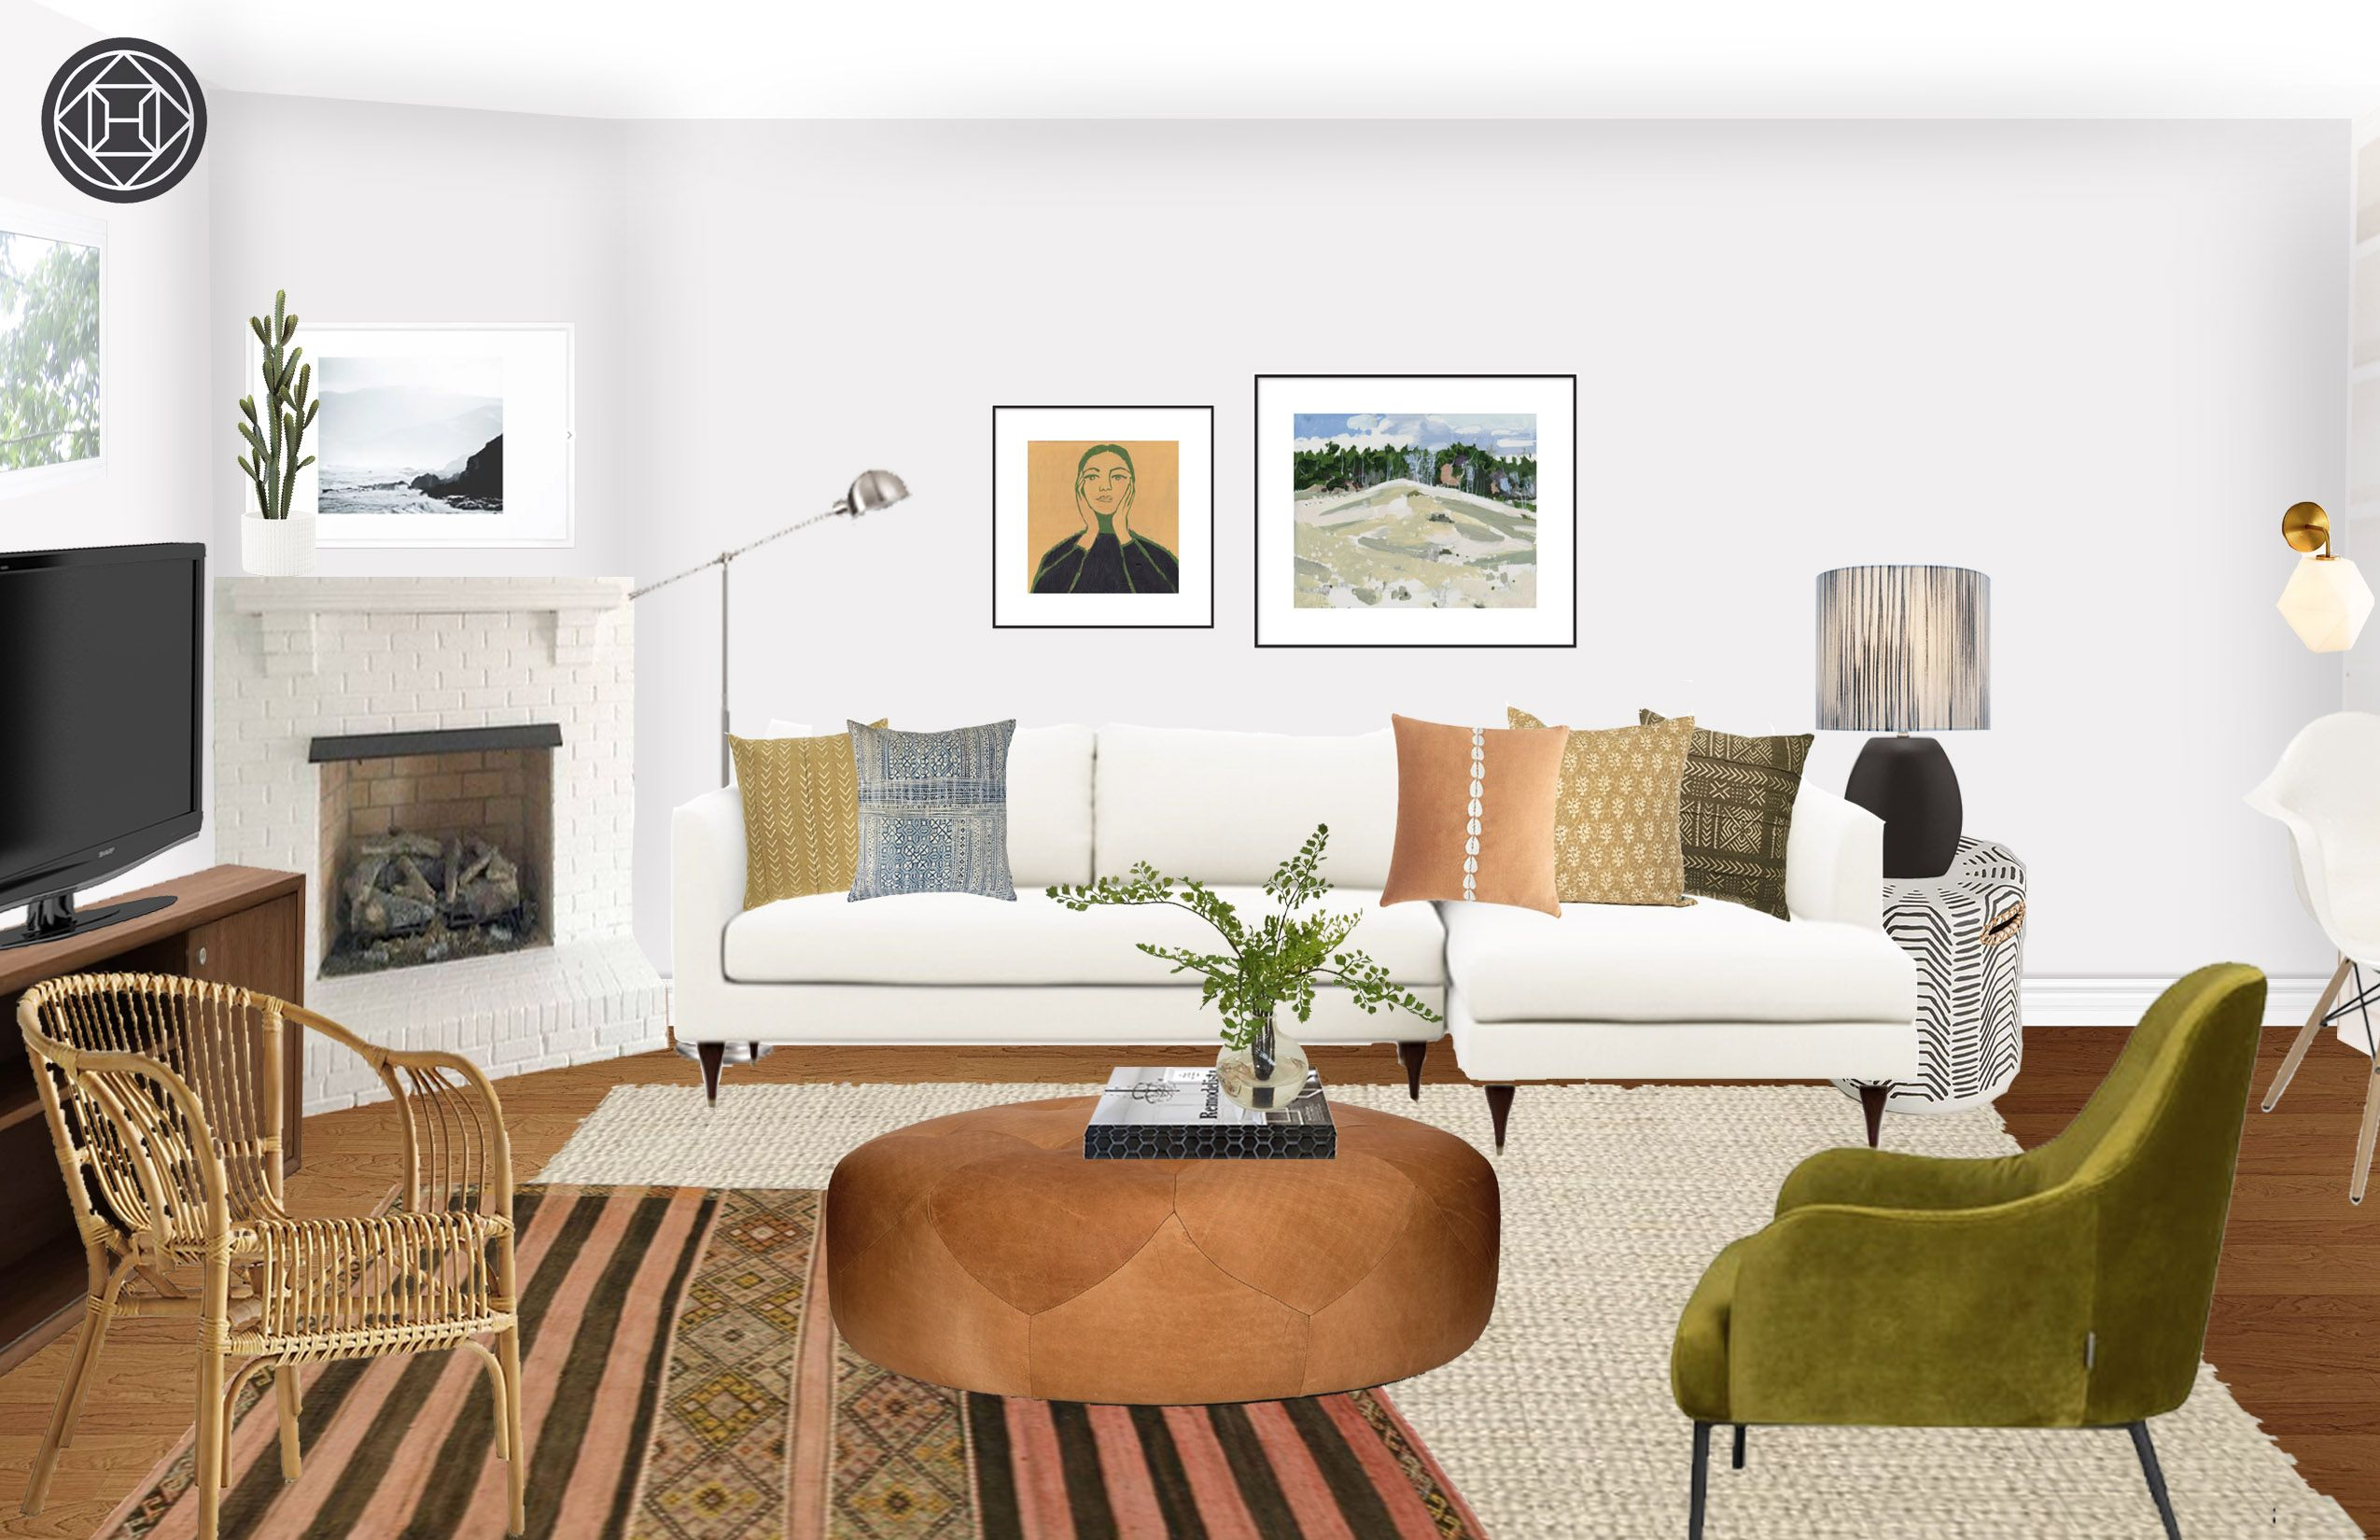 Eclectic Bohemian Global Living Room Design By Havenly Interior